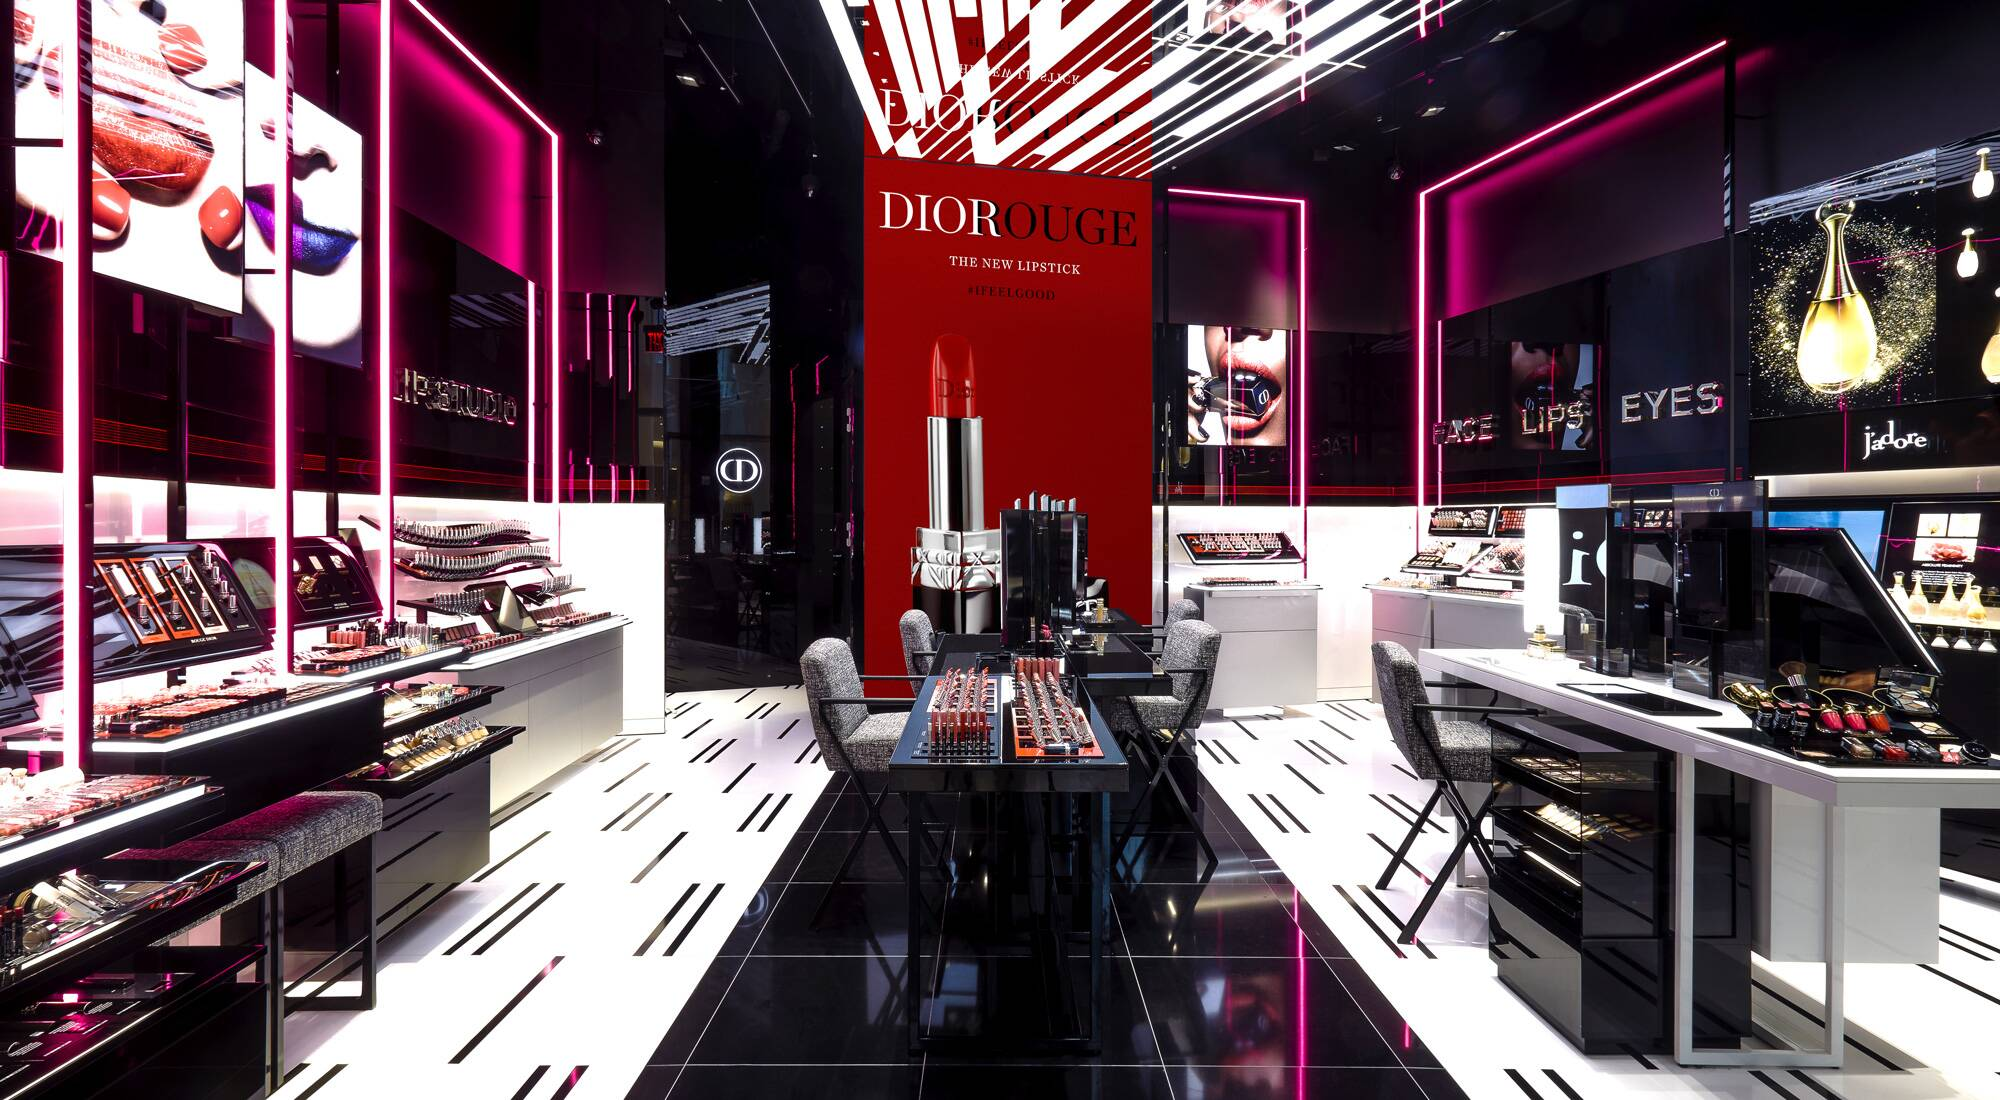 New dior makeup boutique lights up new york lvmh for Boutique center